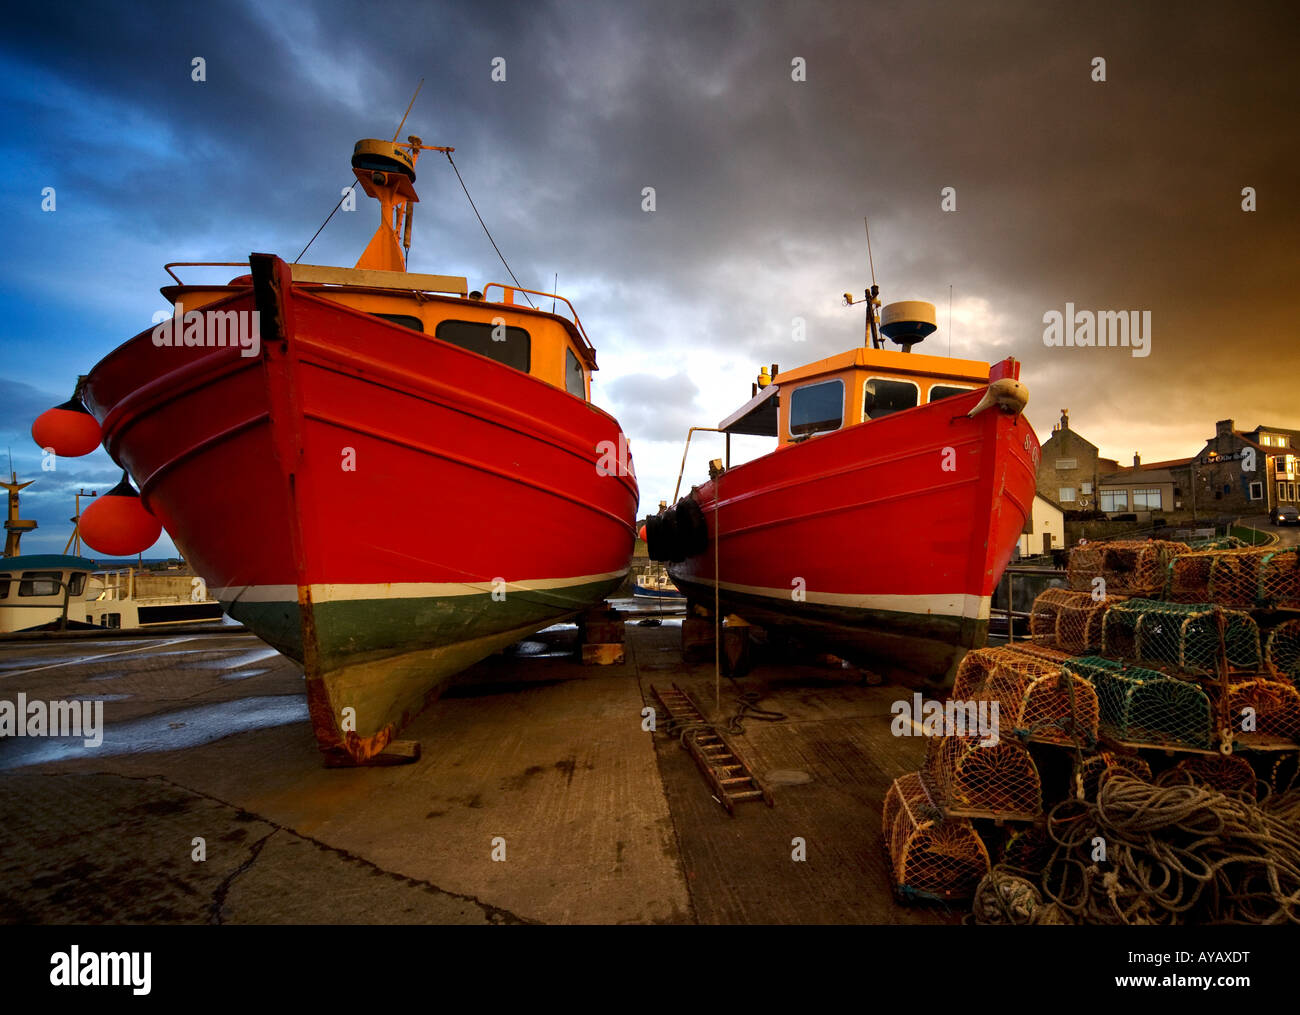 Fishing boats out of the water for winter, Northumberland, England - Stock Image